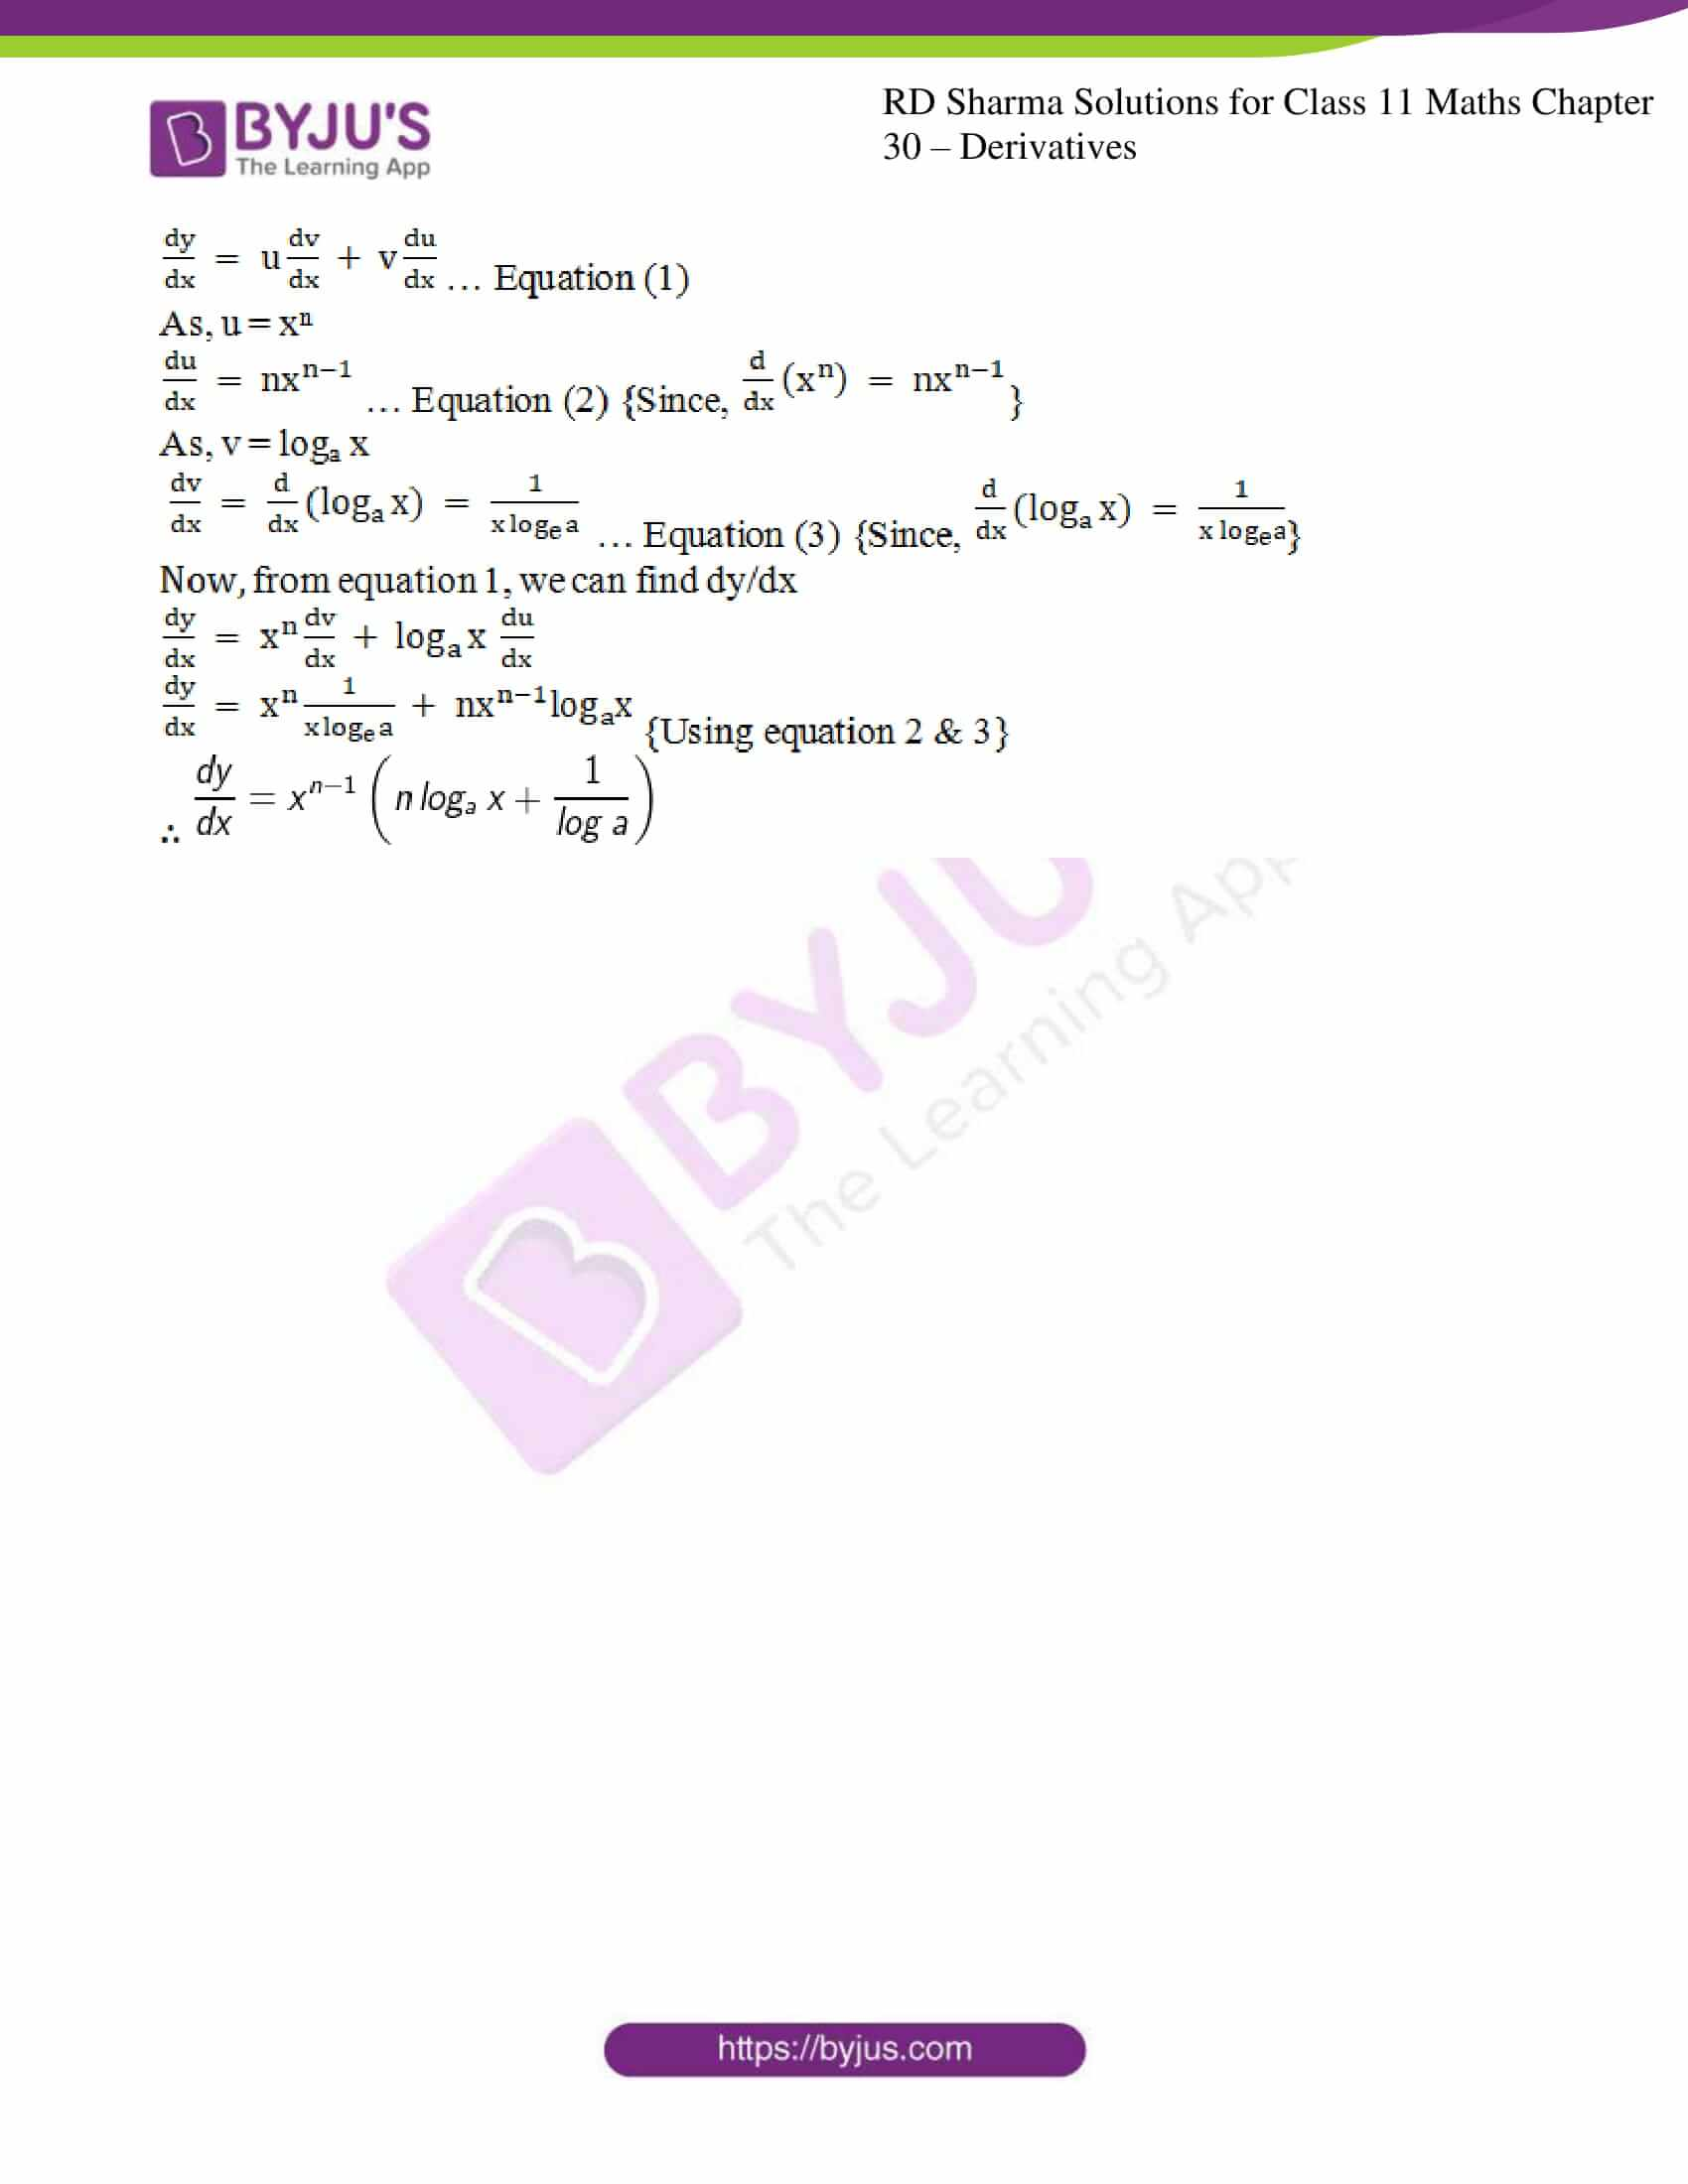 rd sharma class 11 maths chapter 30 ex 4 4